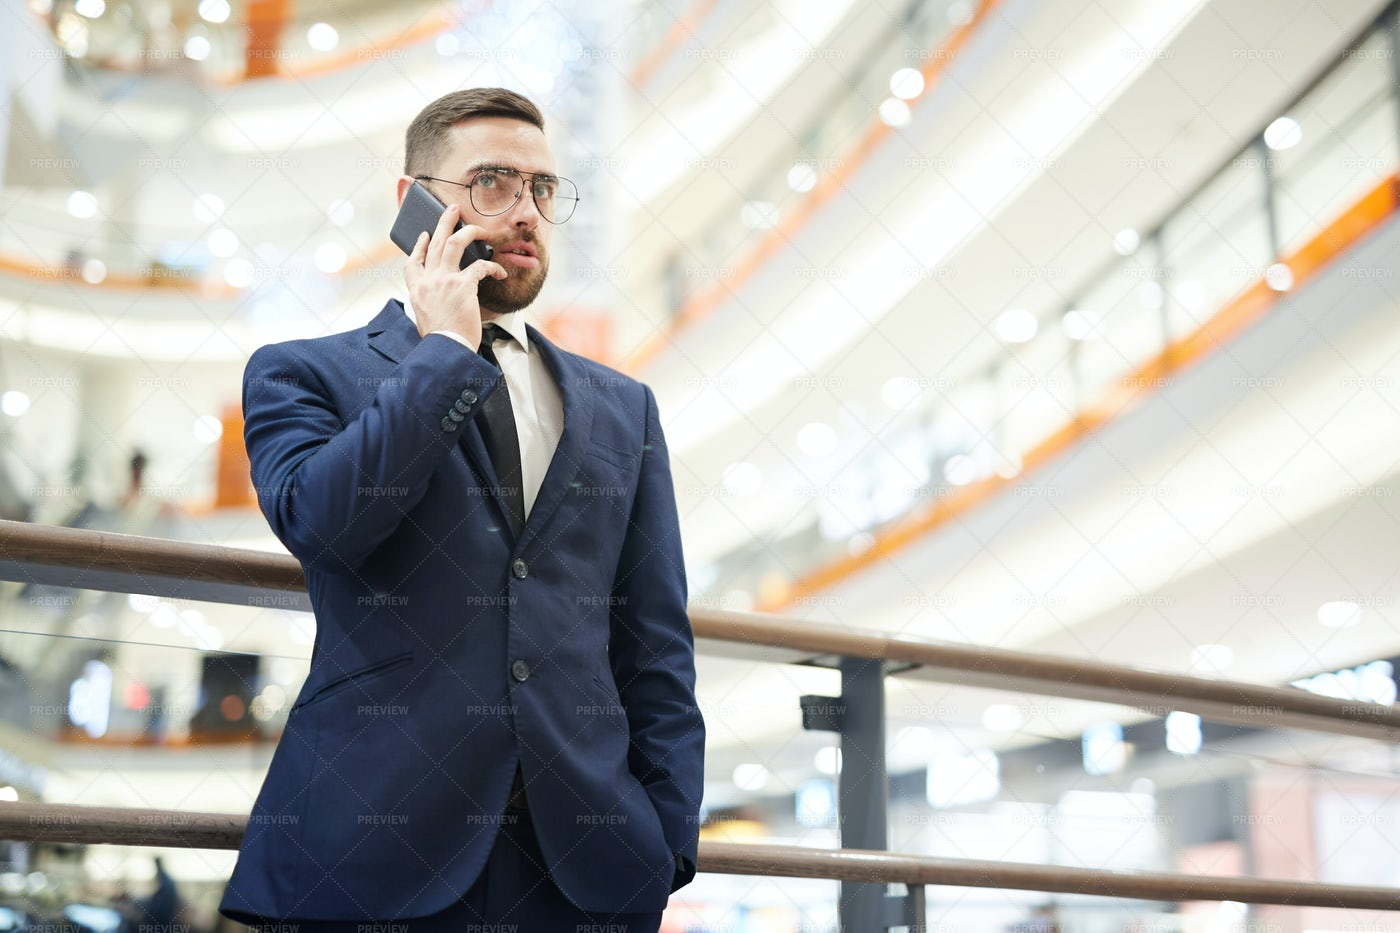 Agent On The Phone: Stock Photos